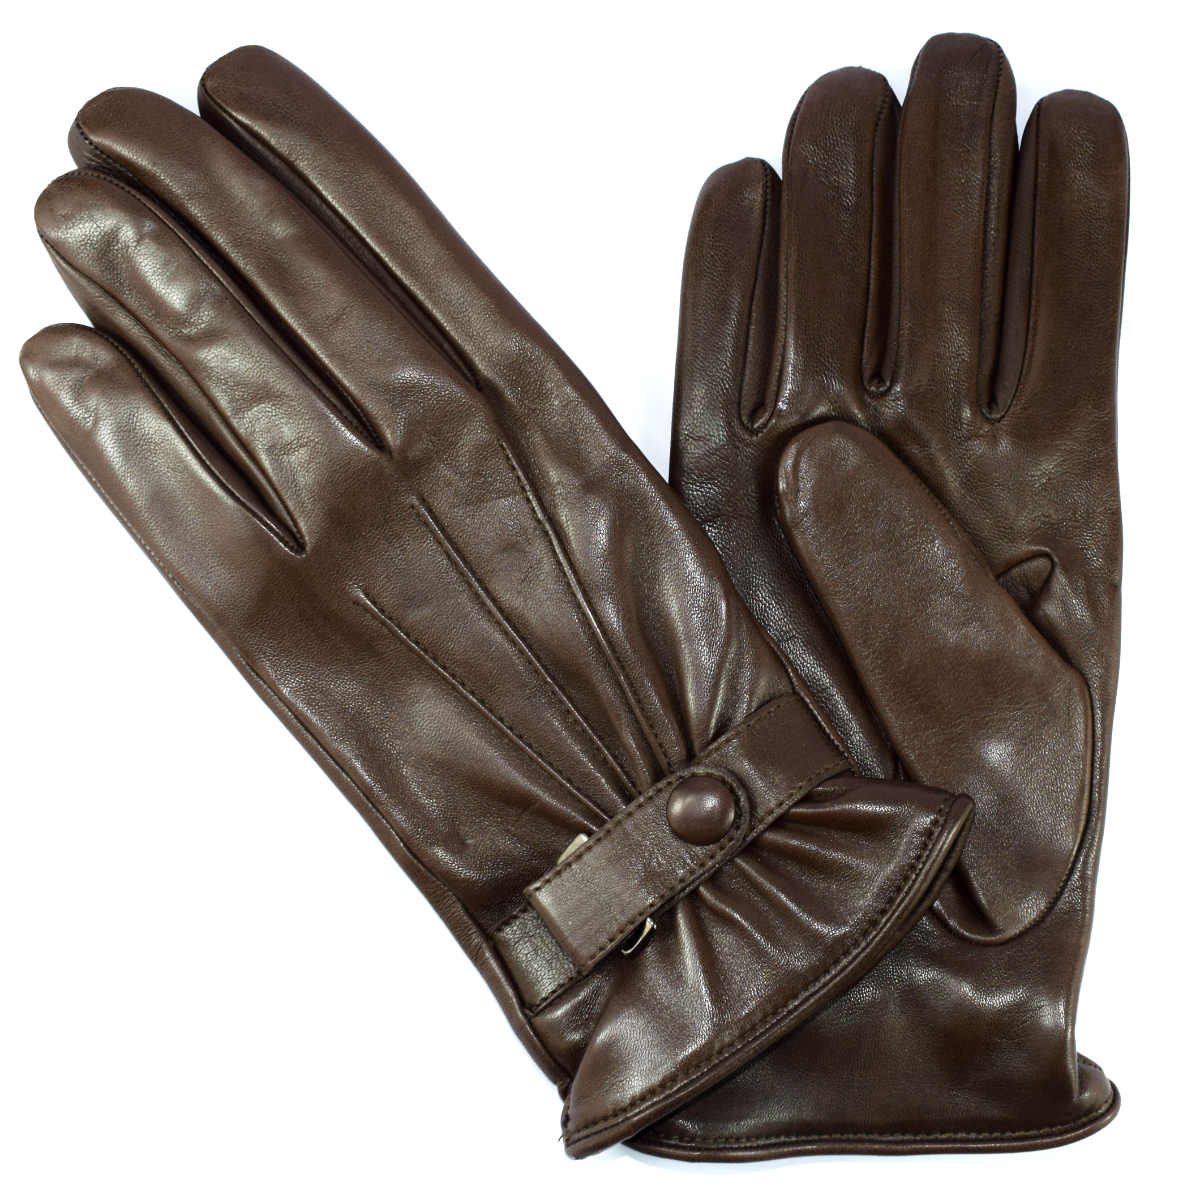 5C100  MAN GLOVE WITH LACE by Bottega Fiorentina